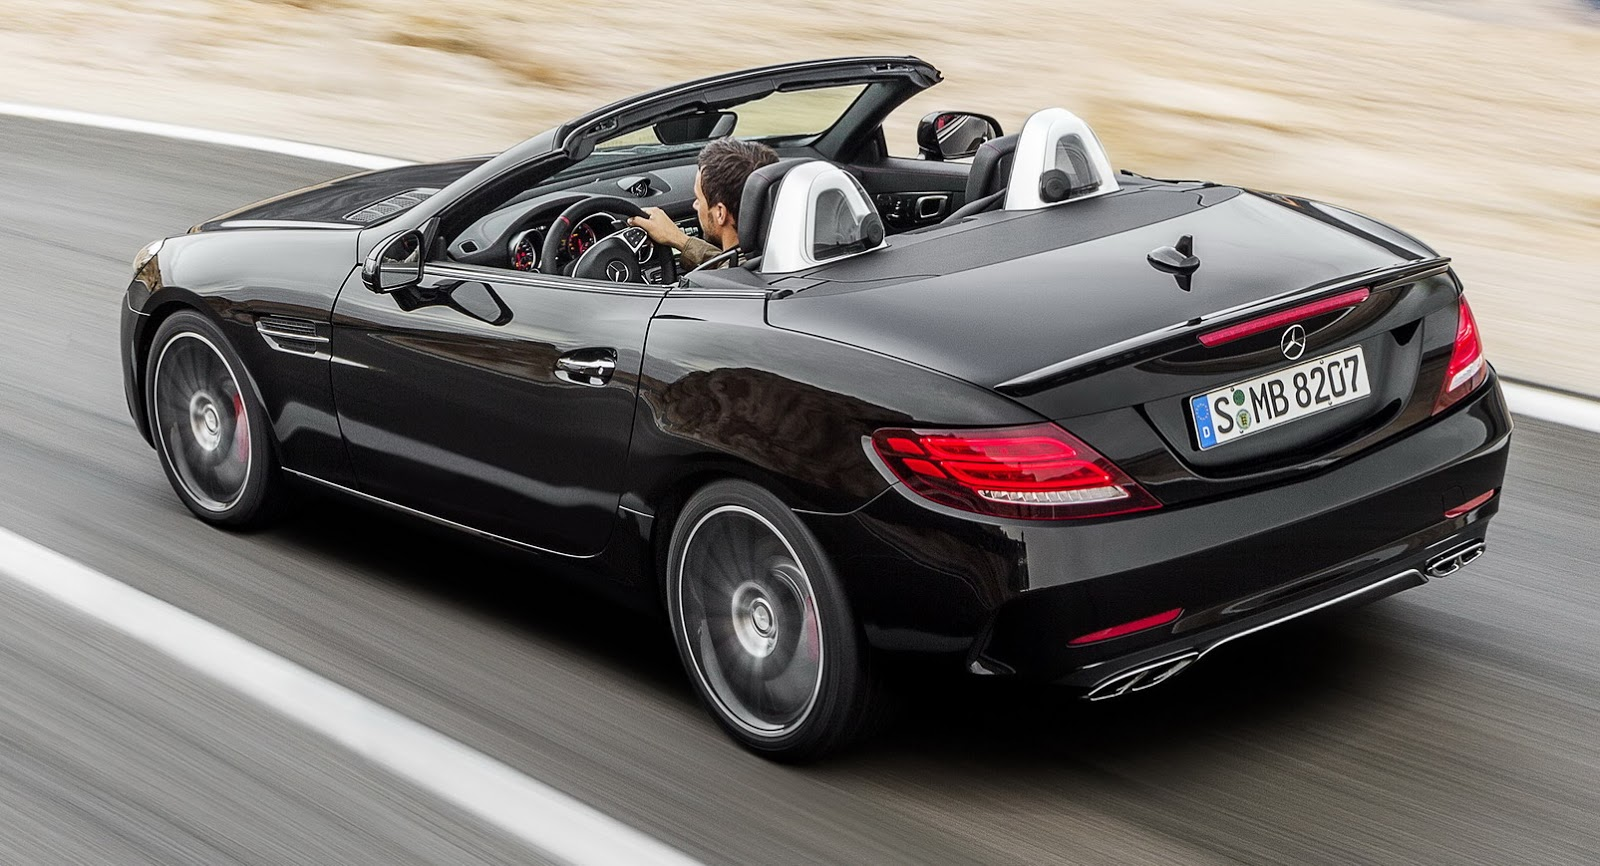 Mercedes SLK morphs into freshened SLC roadster for 2017